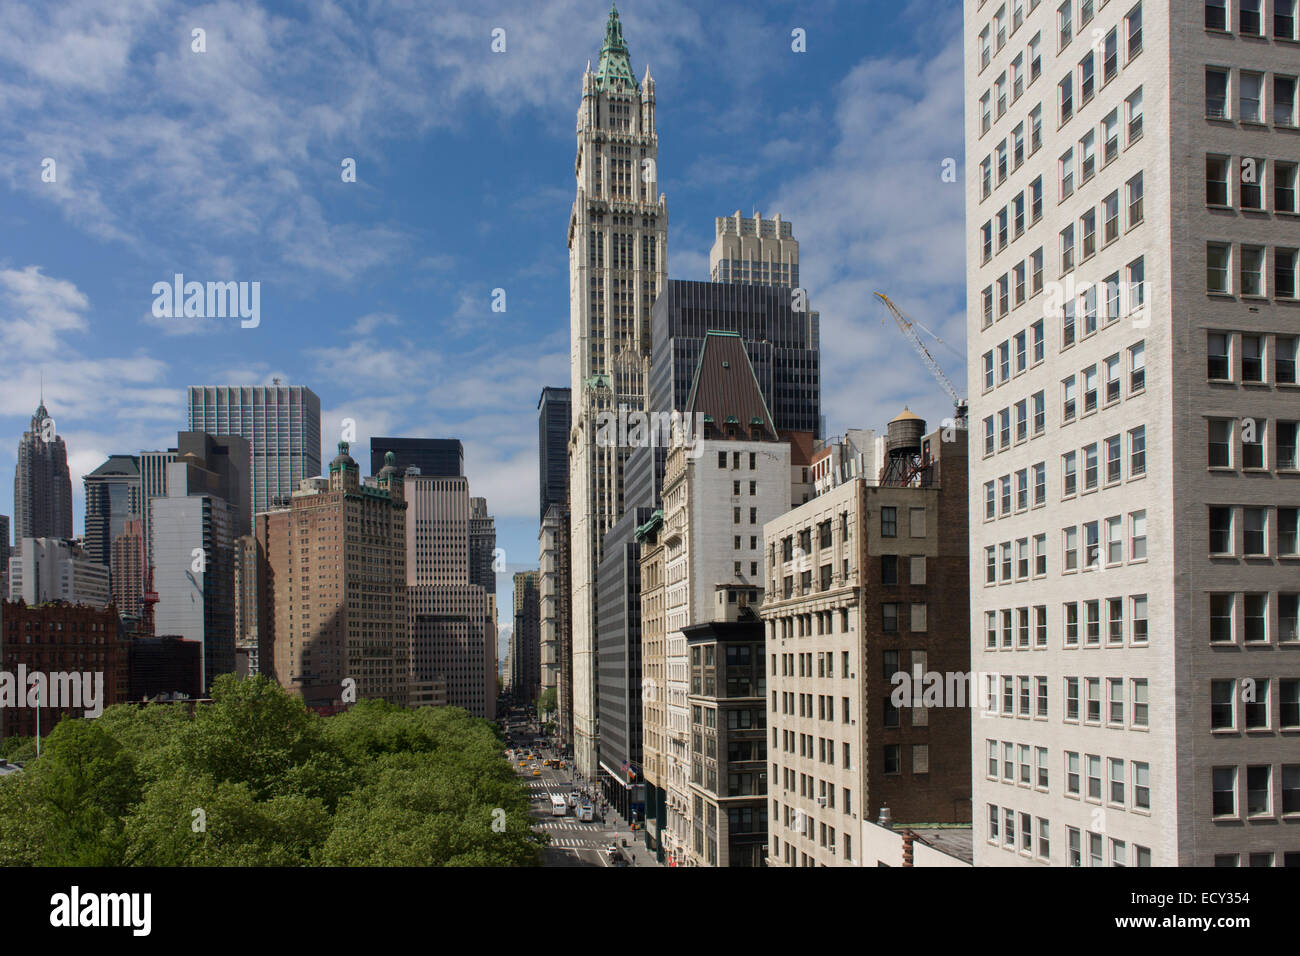 wide-cityscape-of-skyscrapers-looking-ac